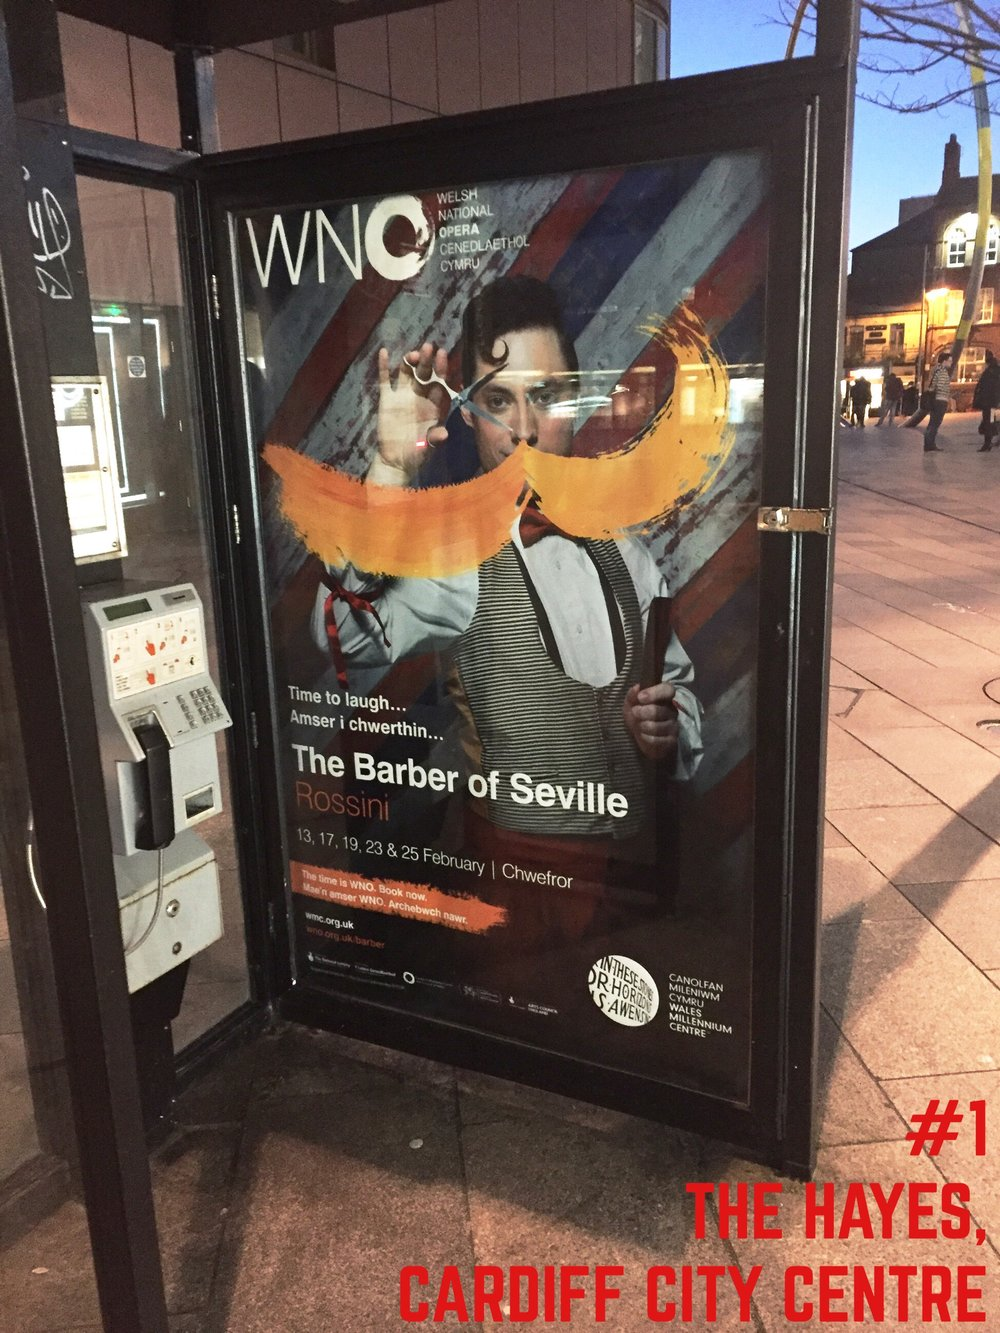 Barber of Seville poster spotted in the Hayes